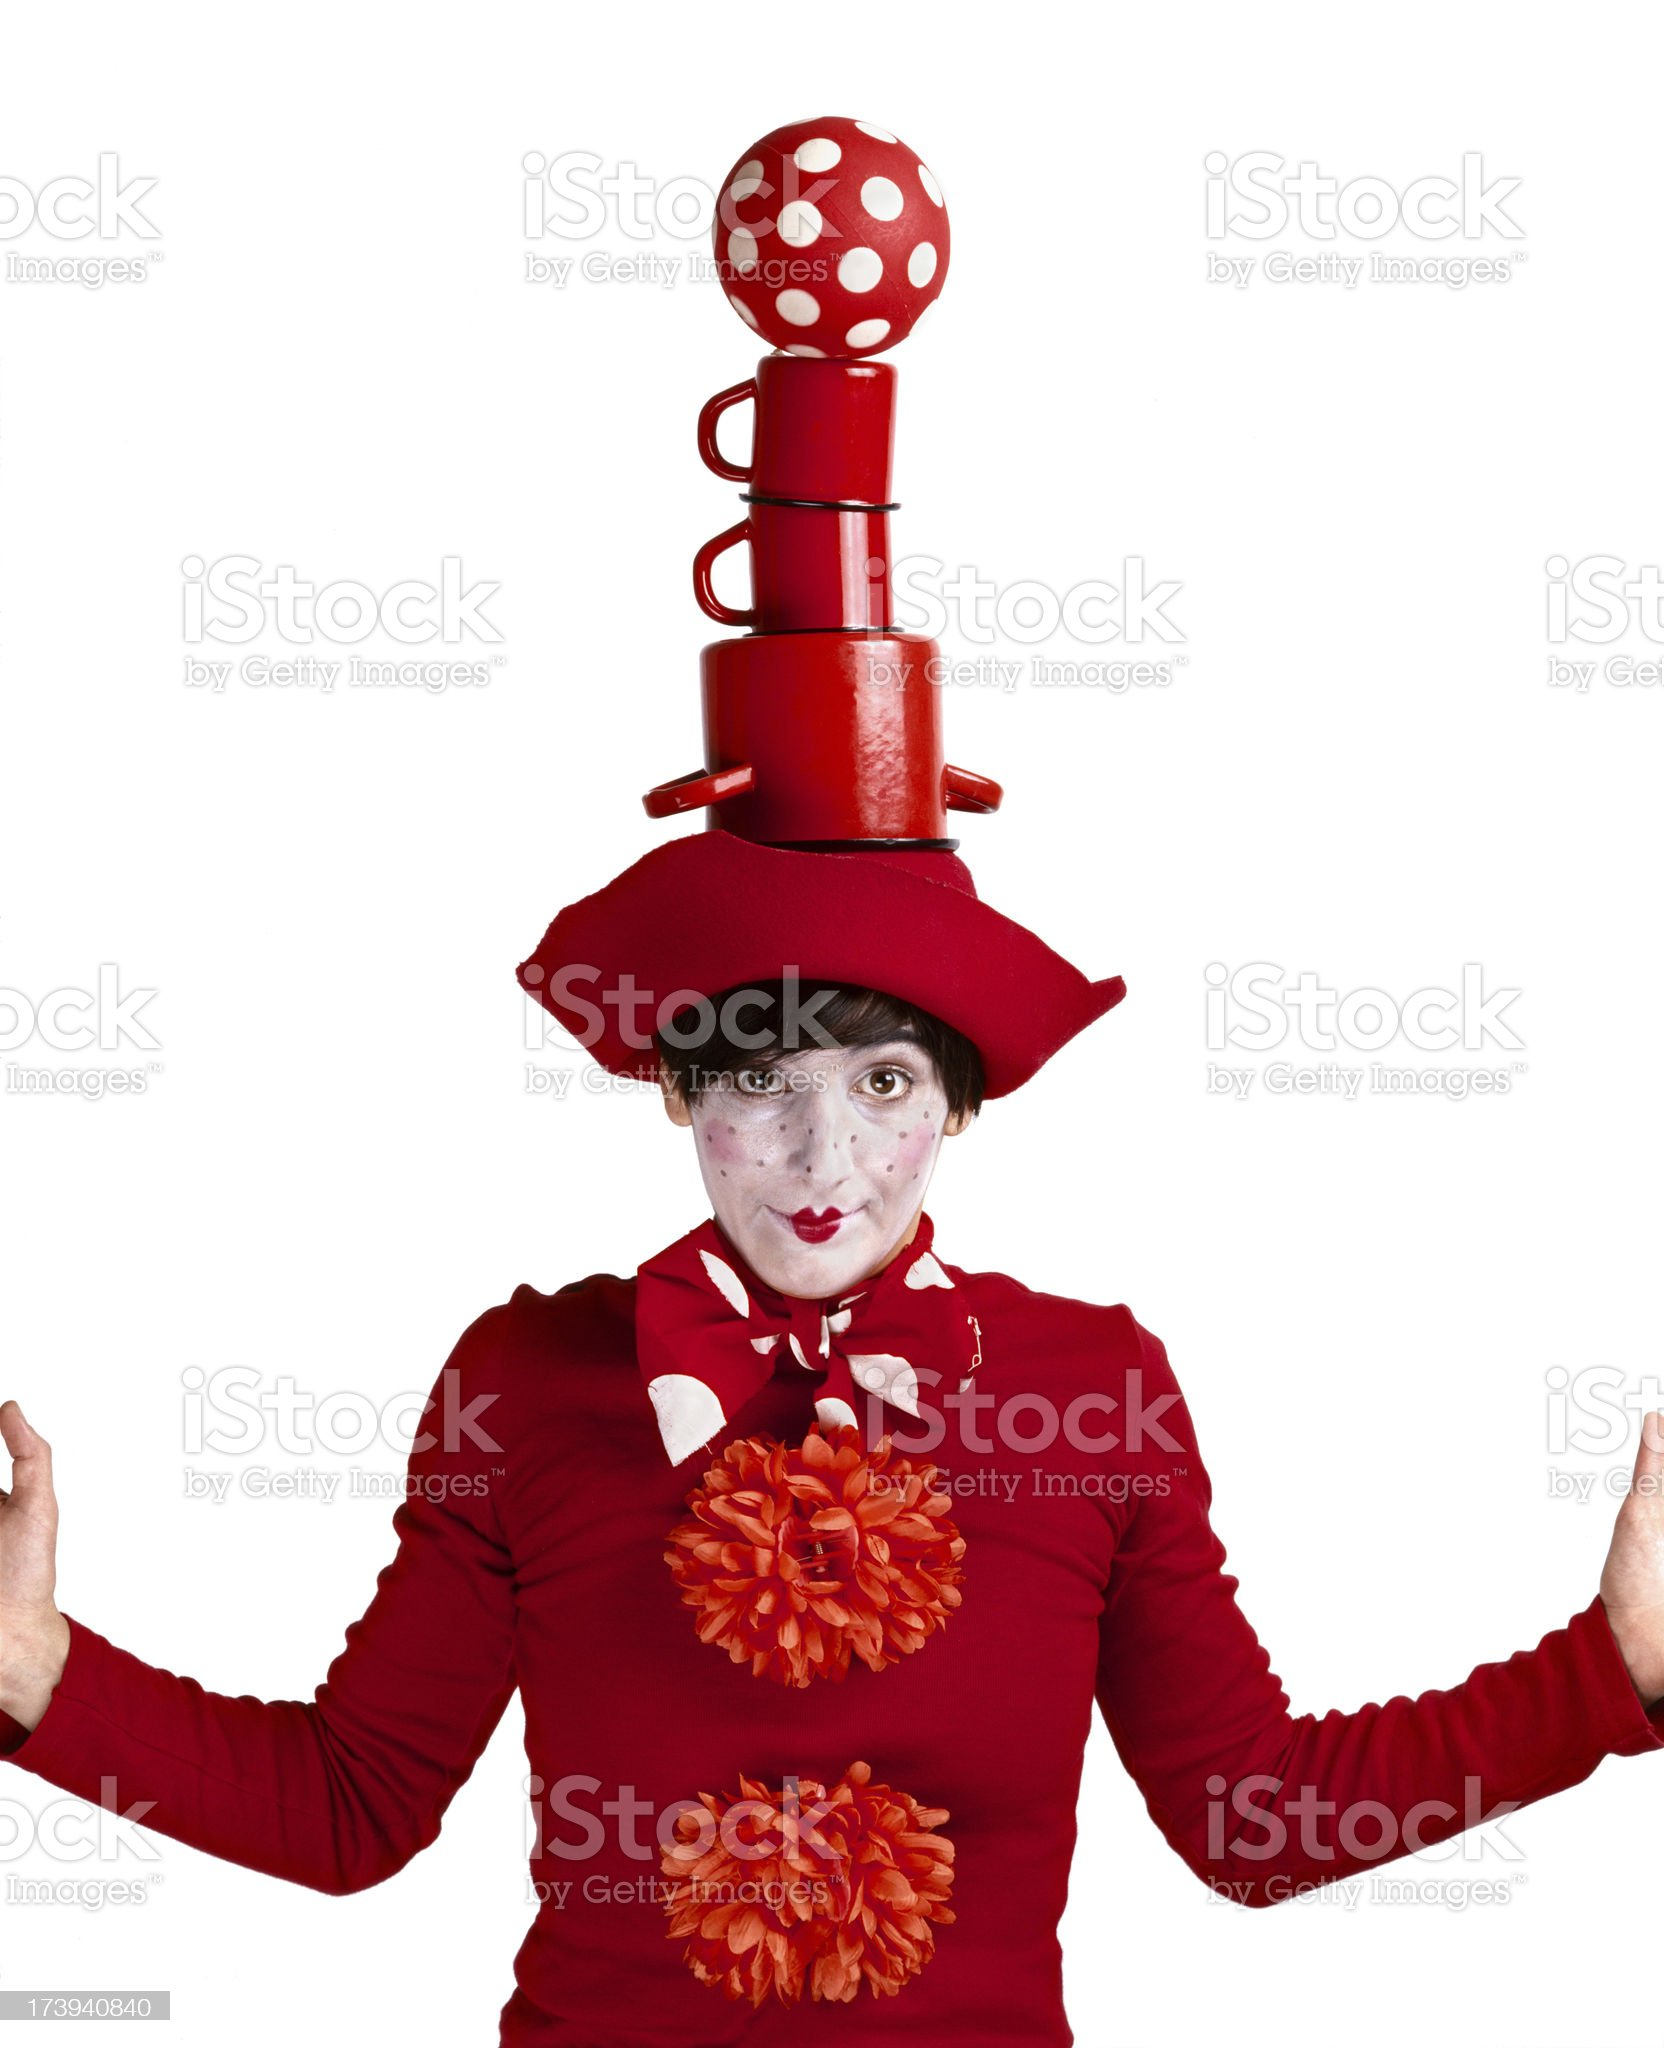 Funny clown white face and red lips royalty-free stock photo